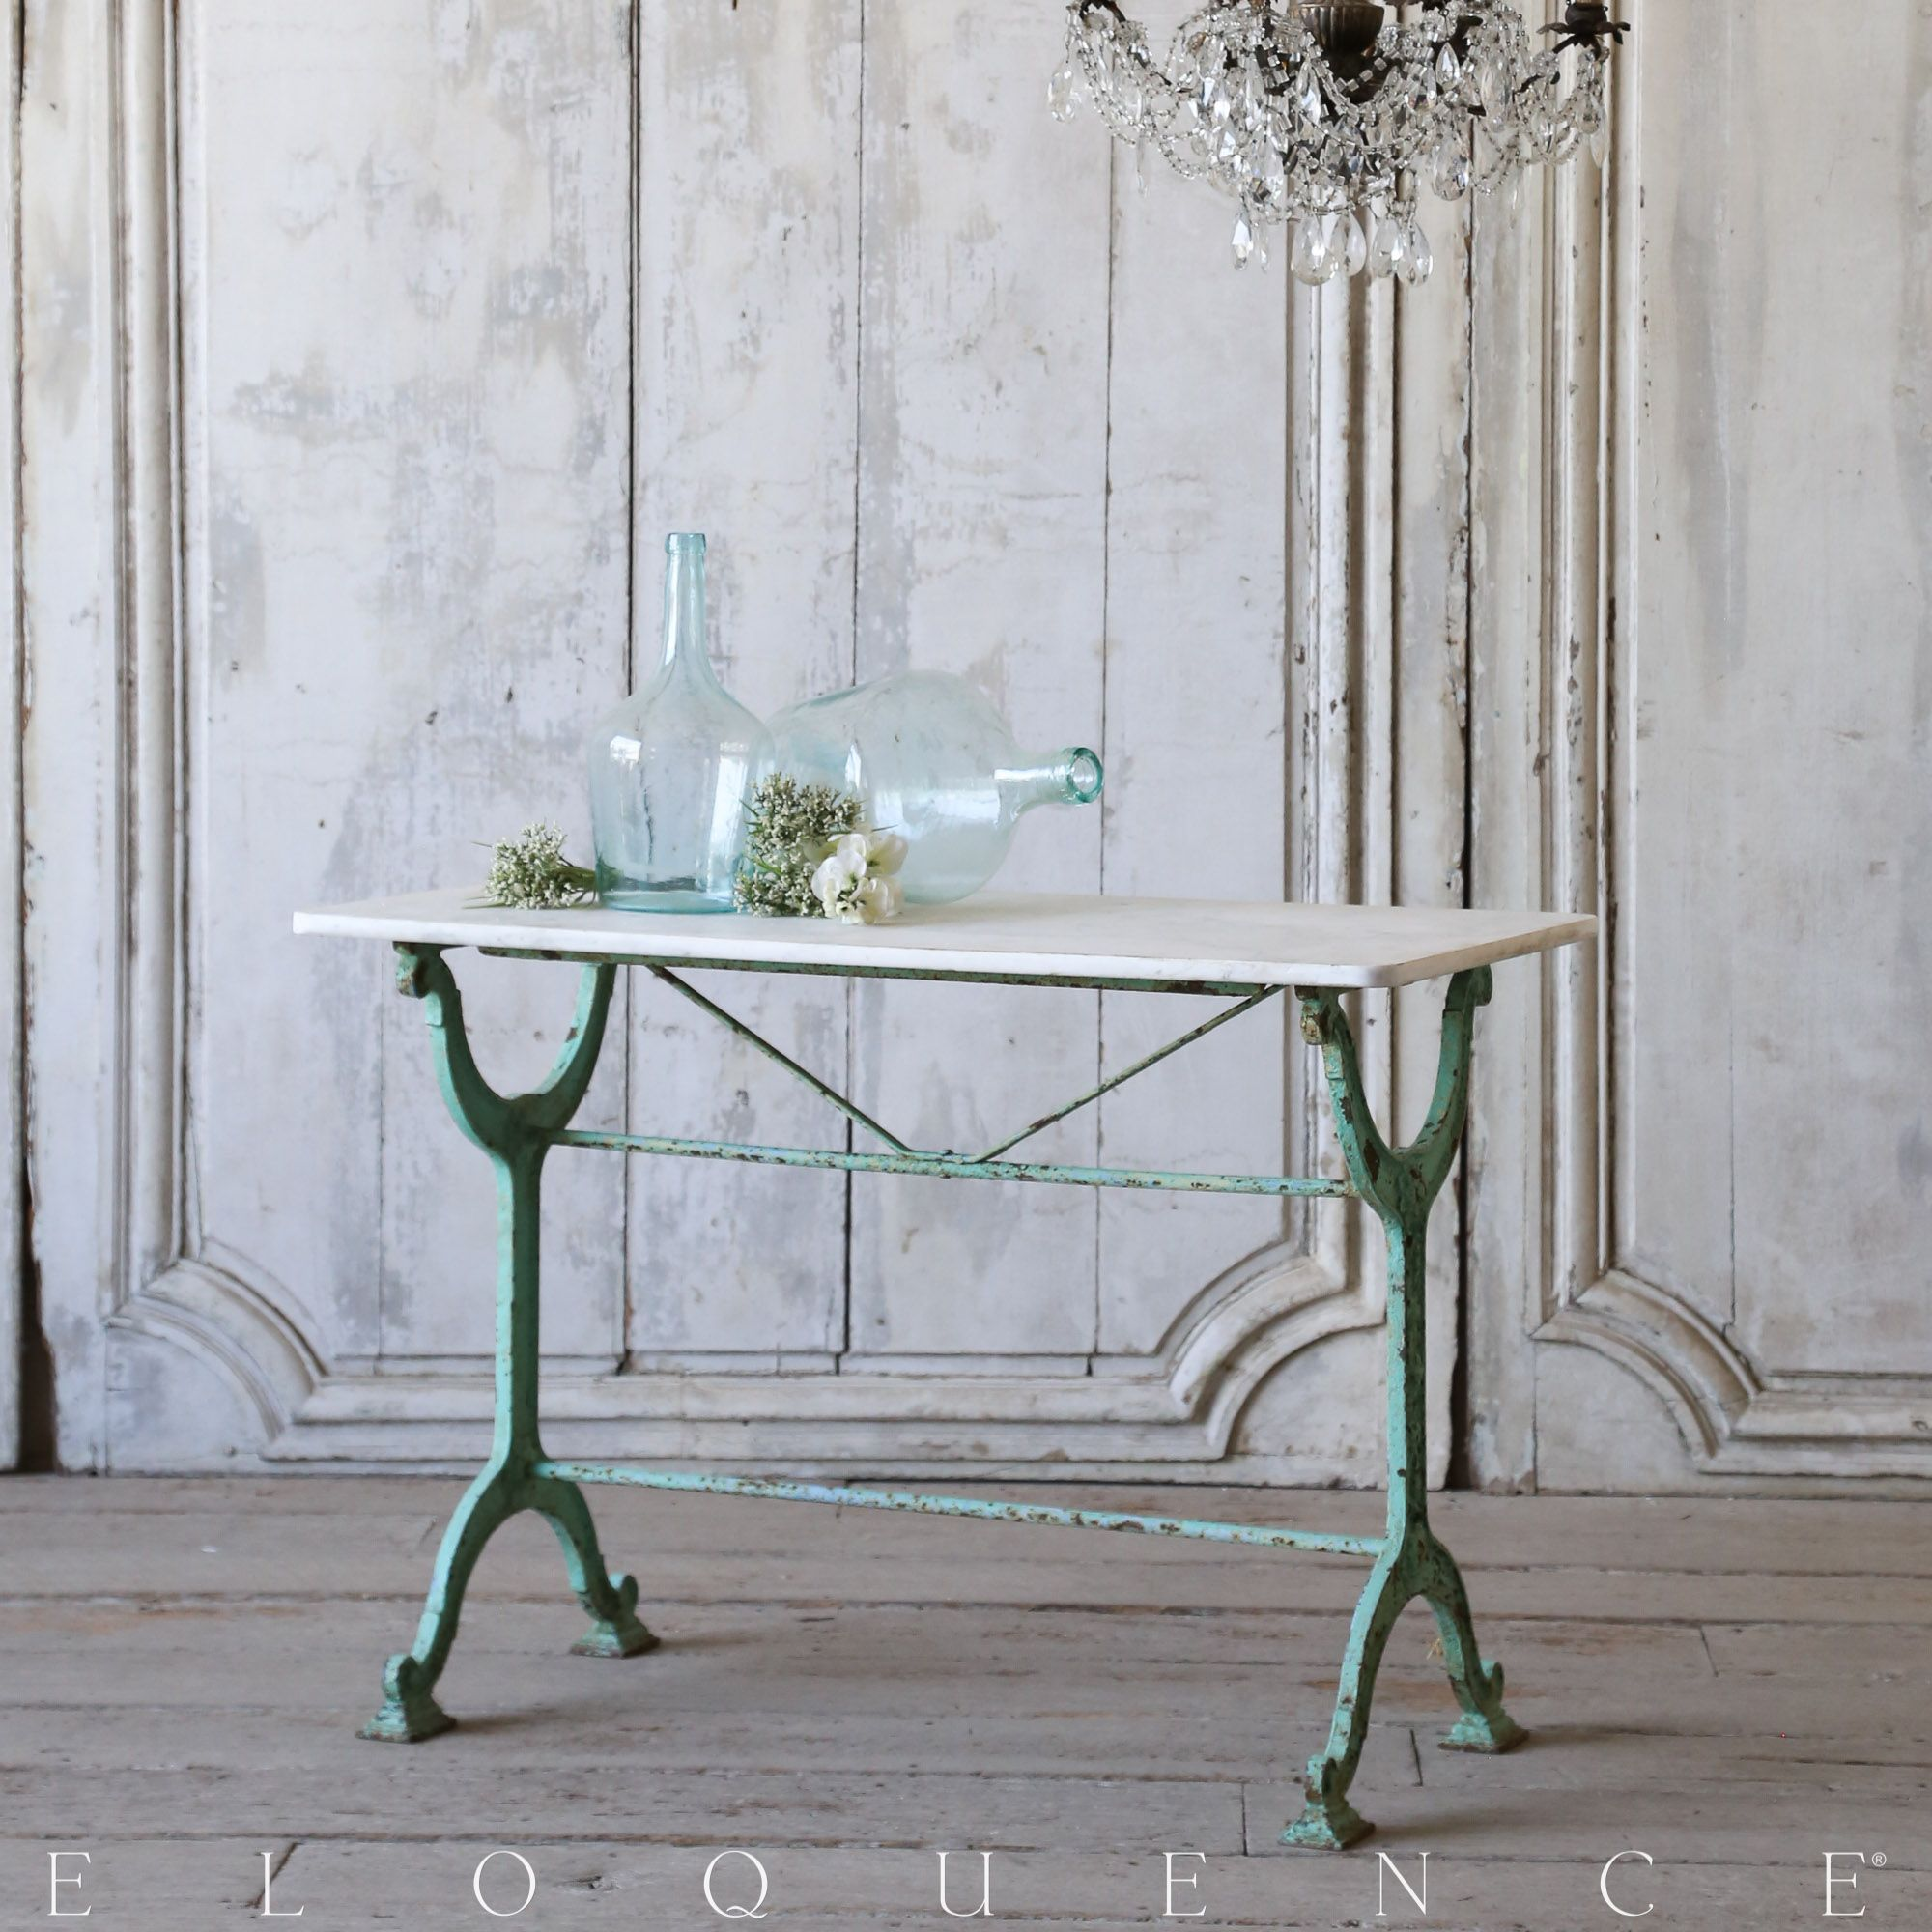 Eloquence, Inc. Antique Bistro Table Charming antique Iron base ...